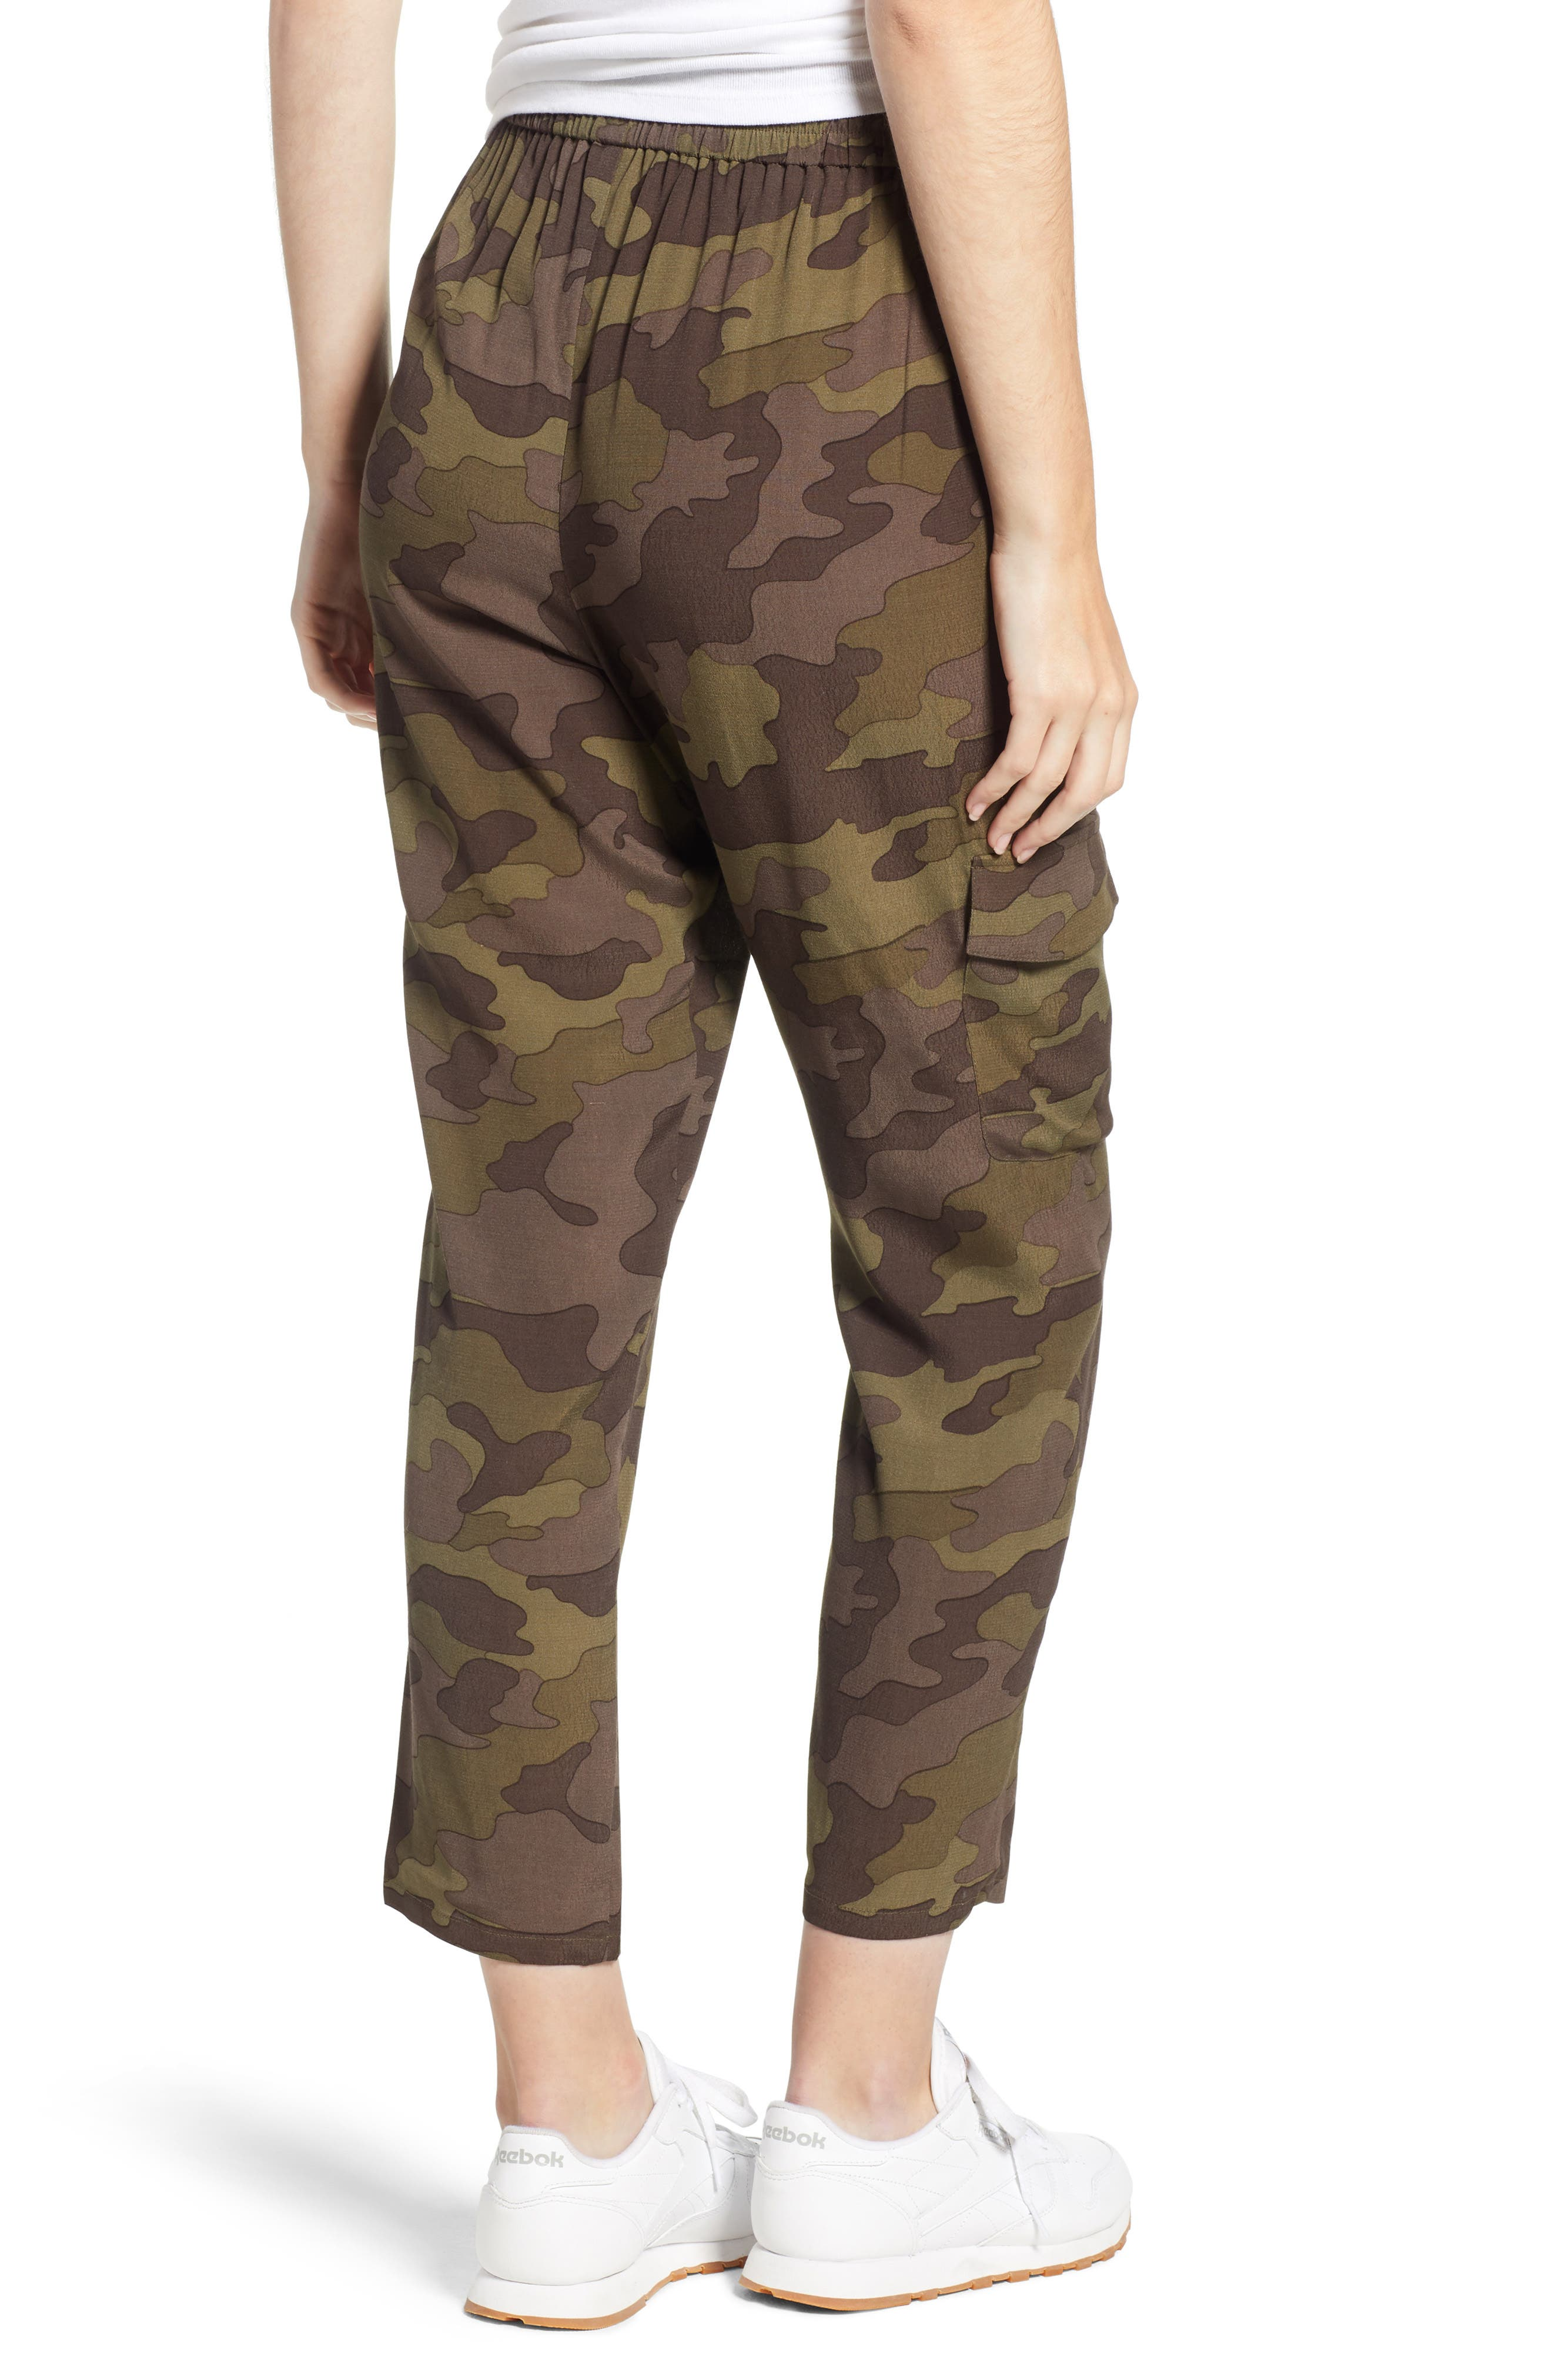 High Rise Camouflage Cargo Pants,                             Alternate thumbnail 3, color,                             210